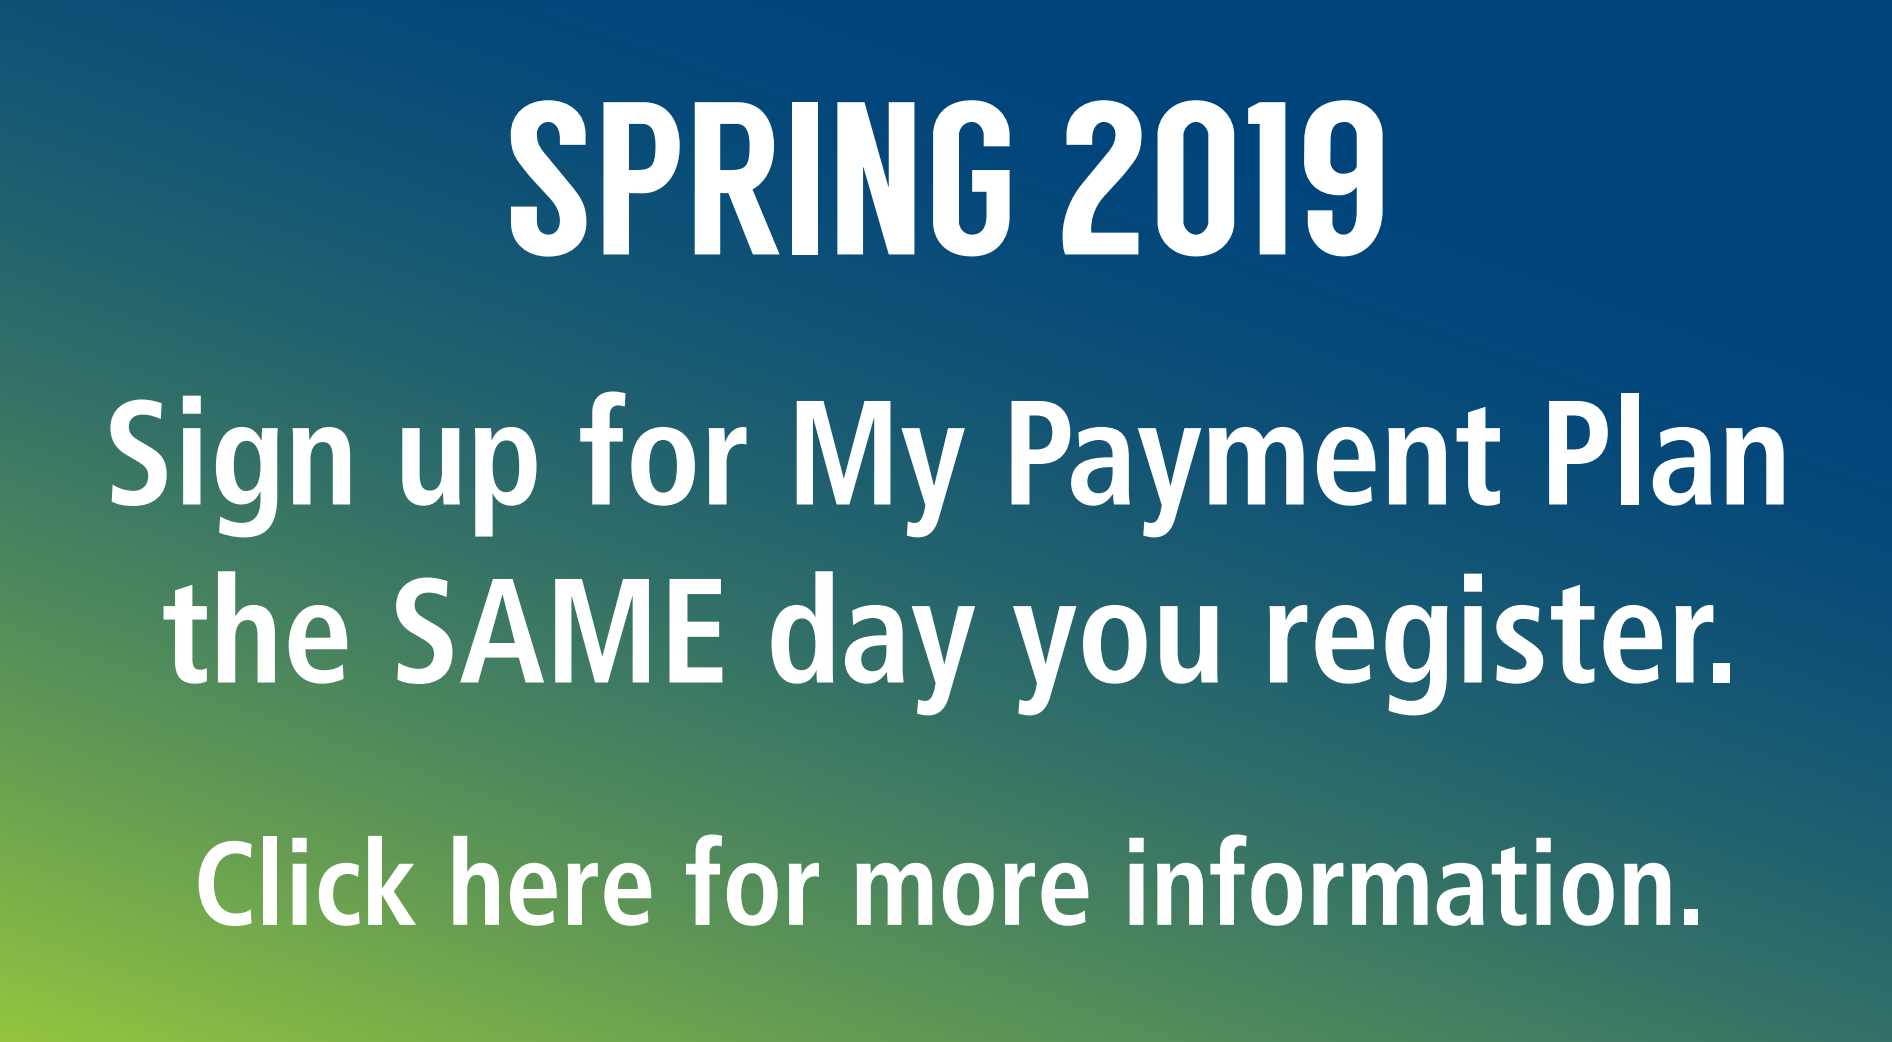 My Payment Plan Information Link